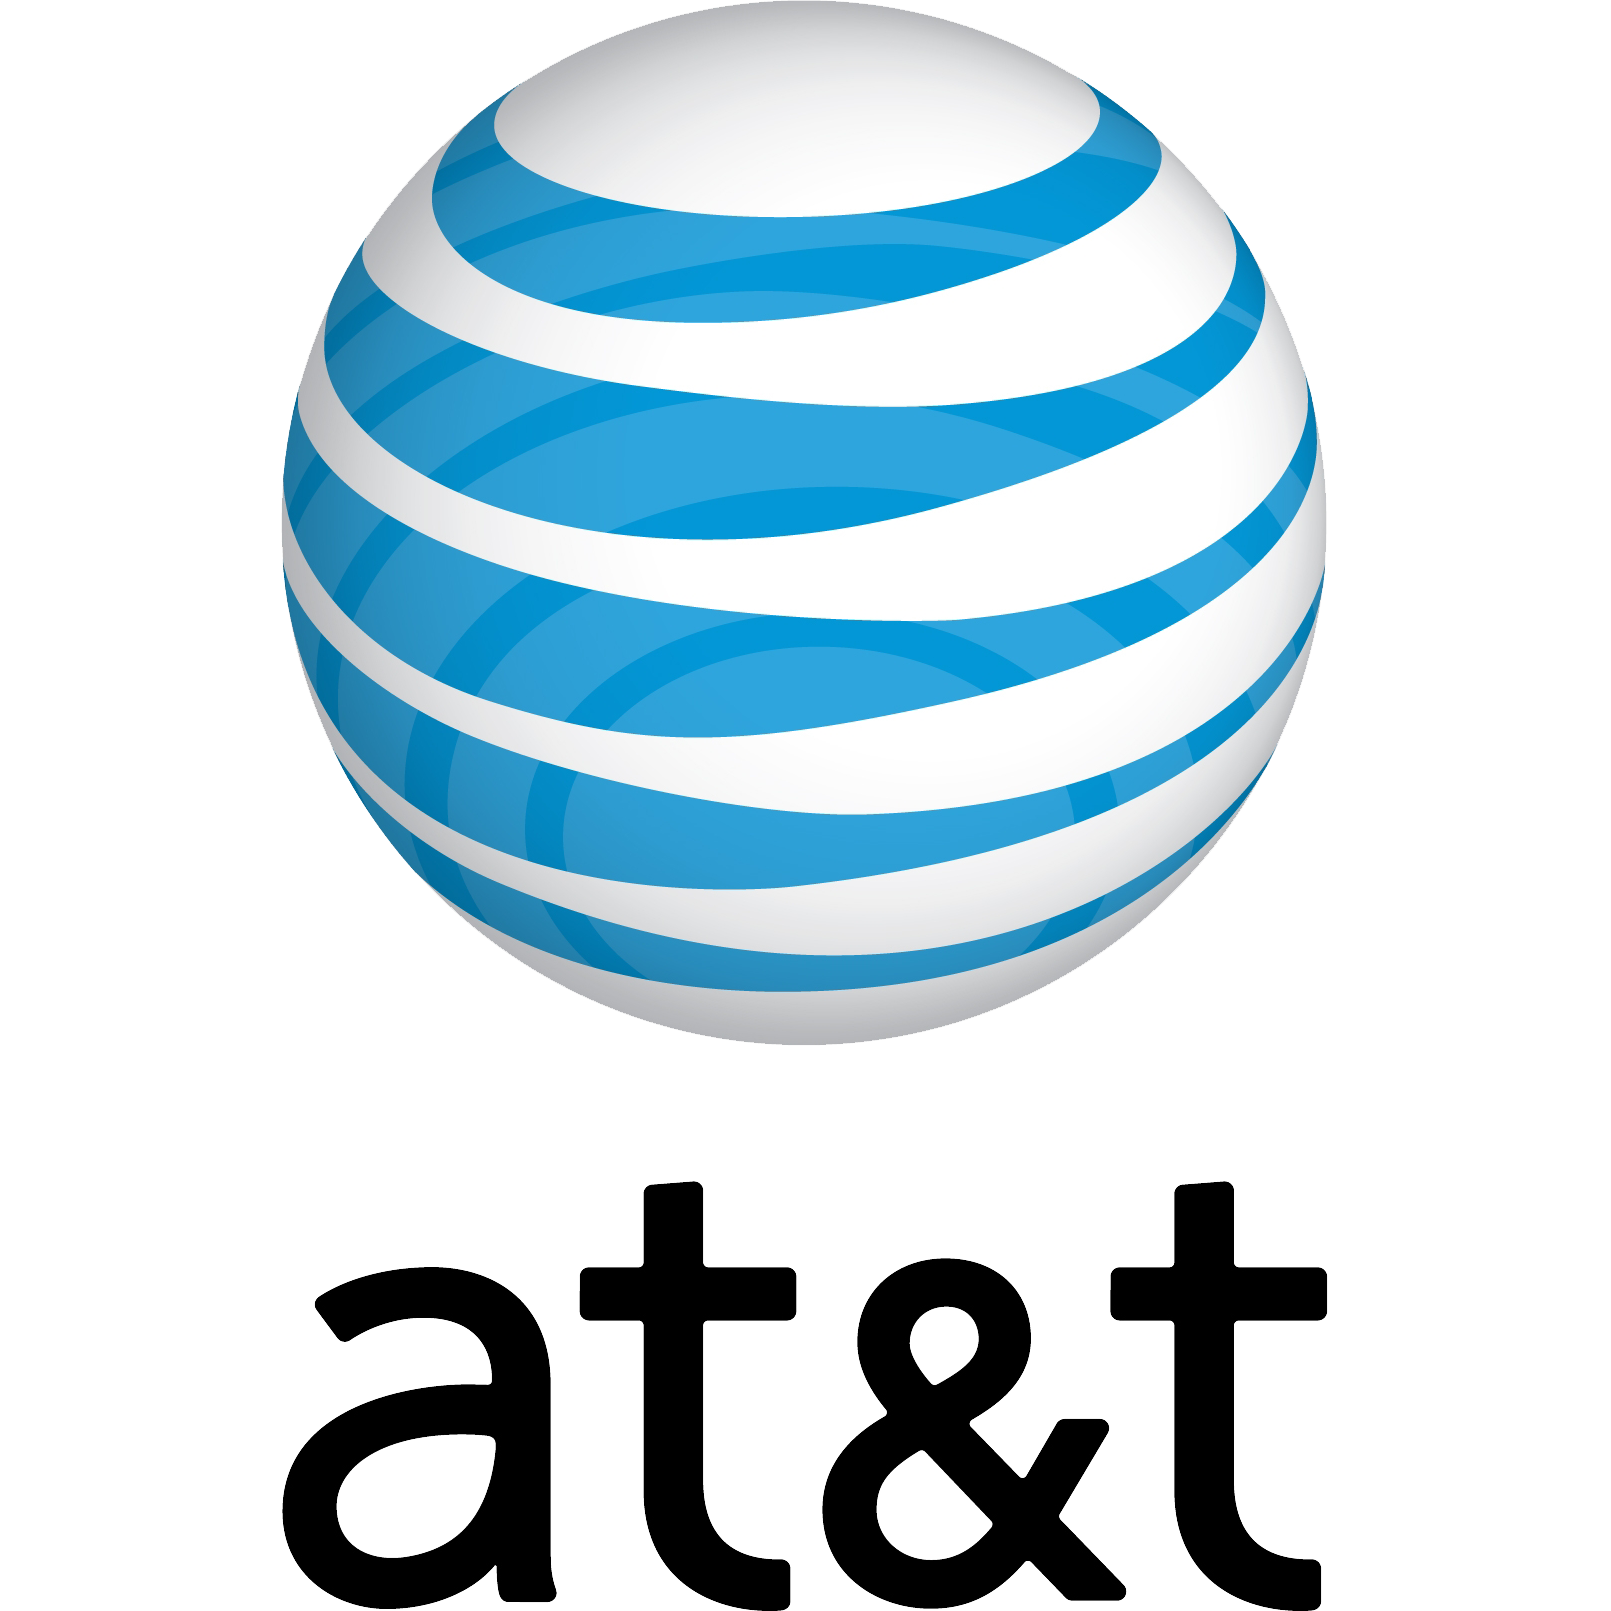 AT&T Tries Merger Again, Now with Leap Wireless